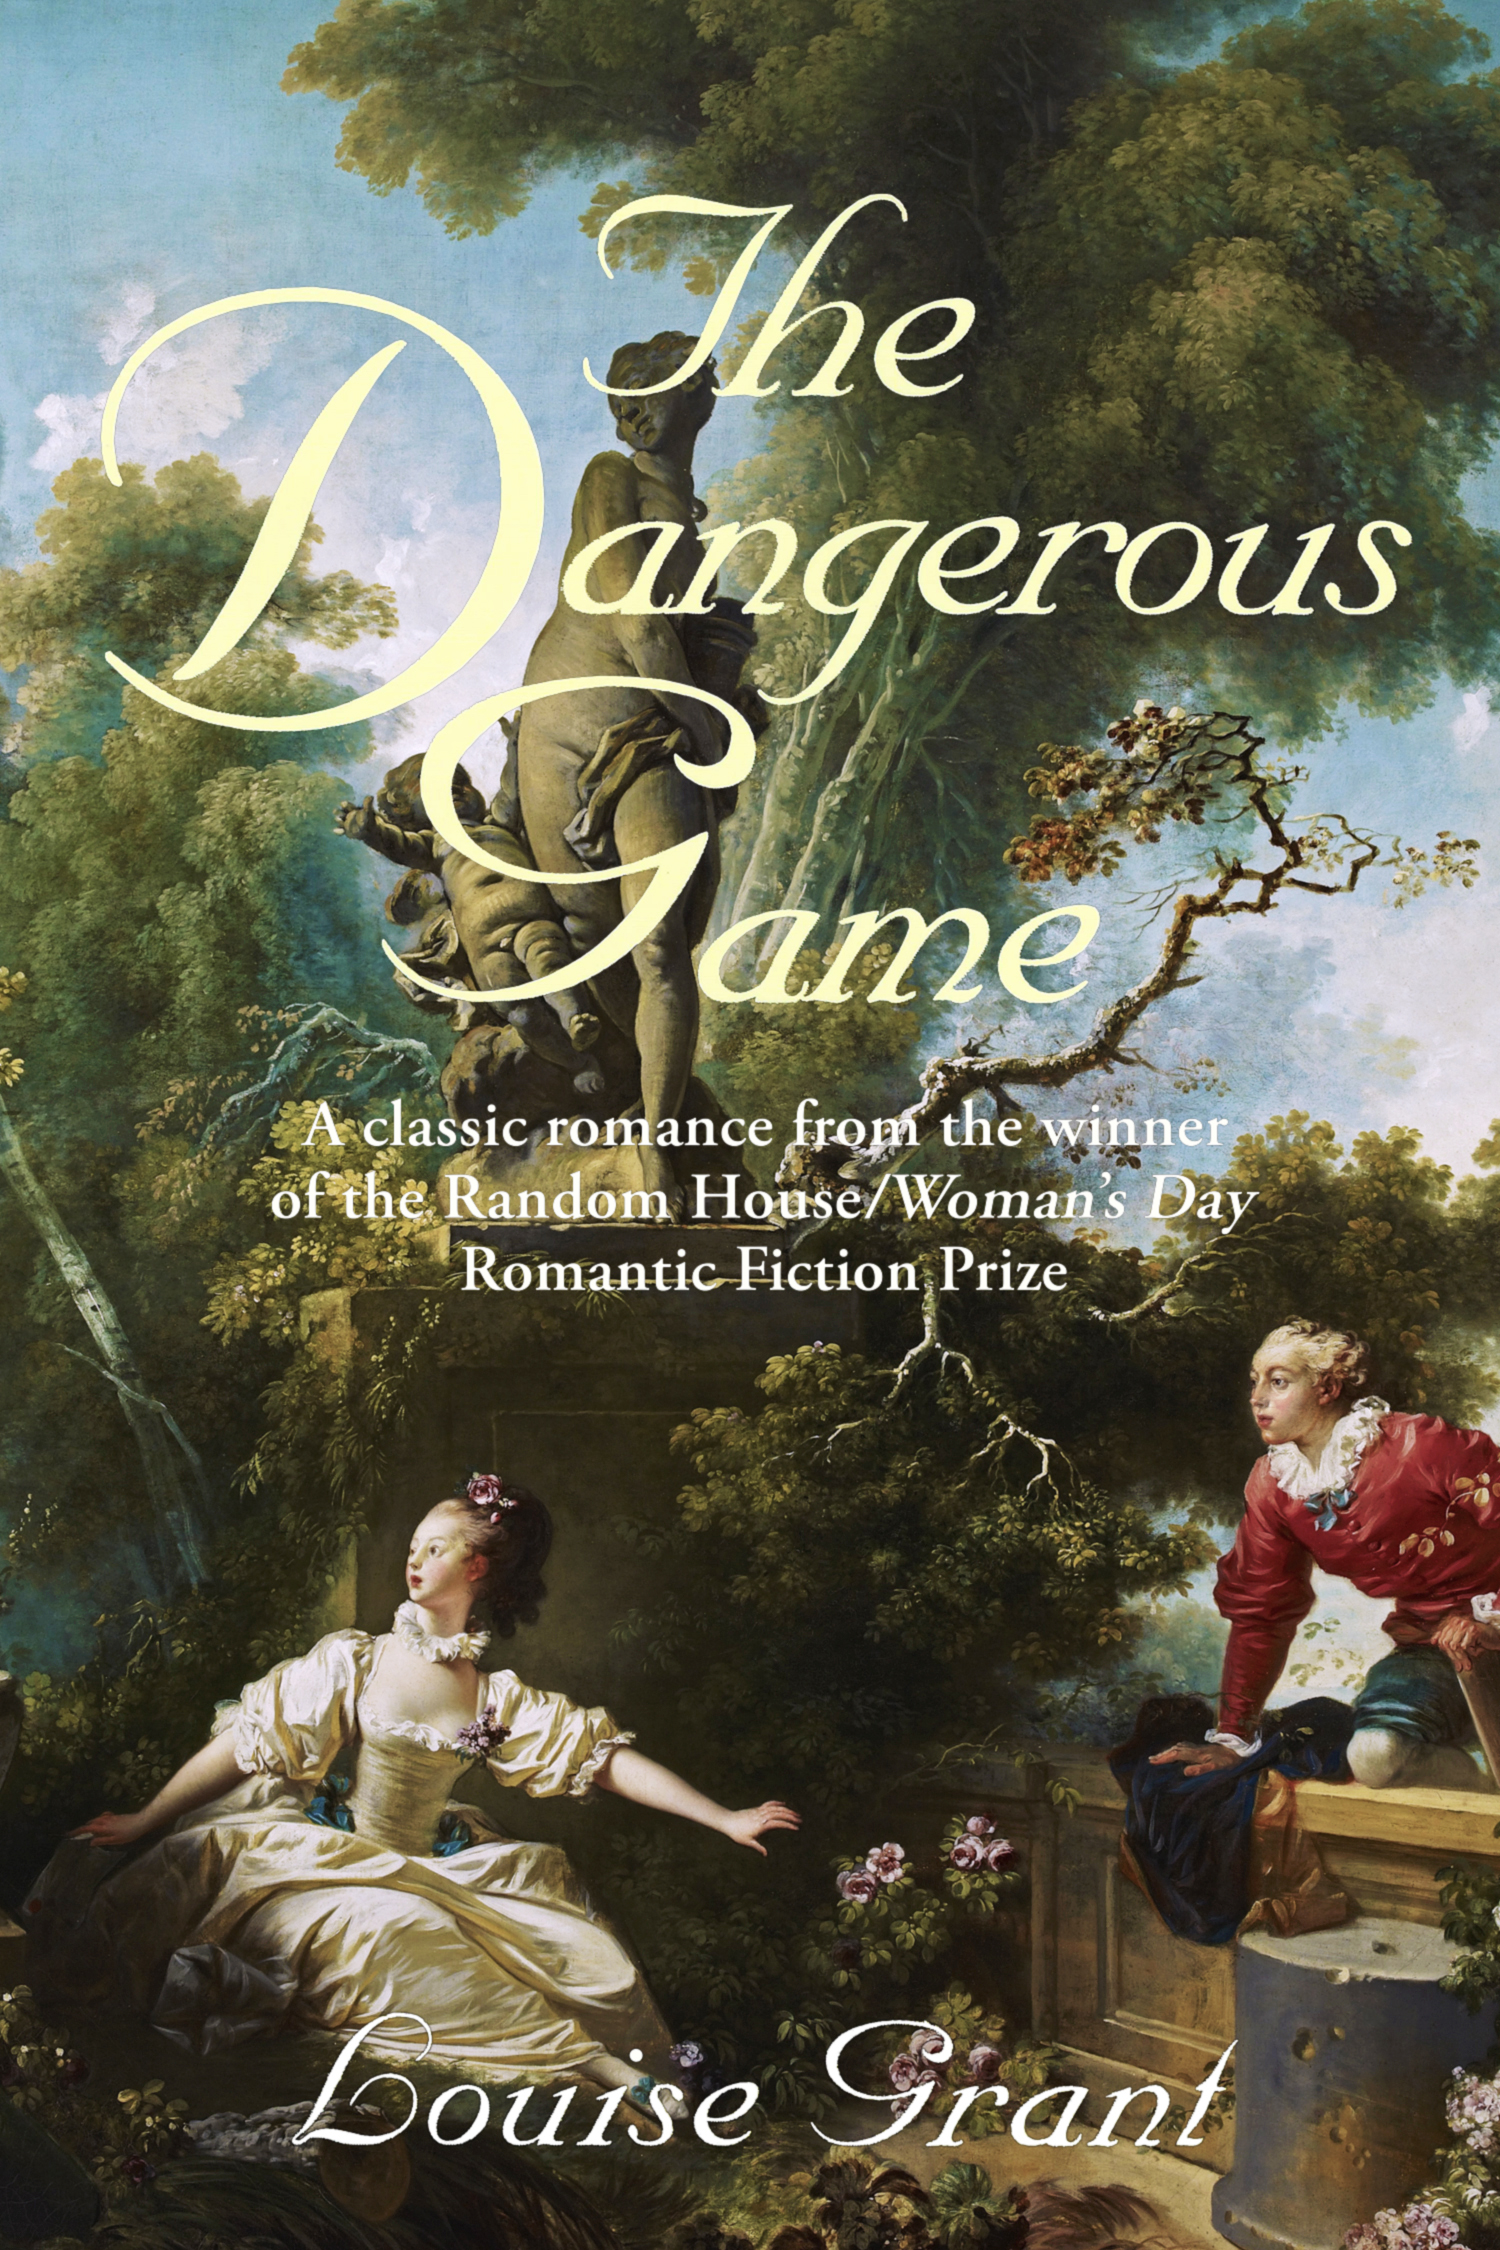 the-dangerous-game-louise-grant-cover.jpg